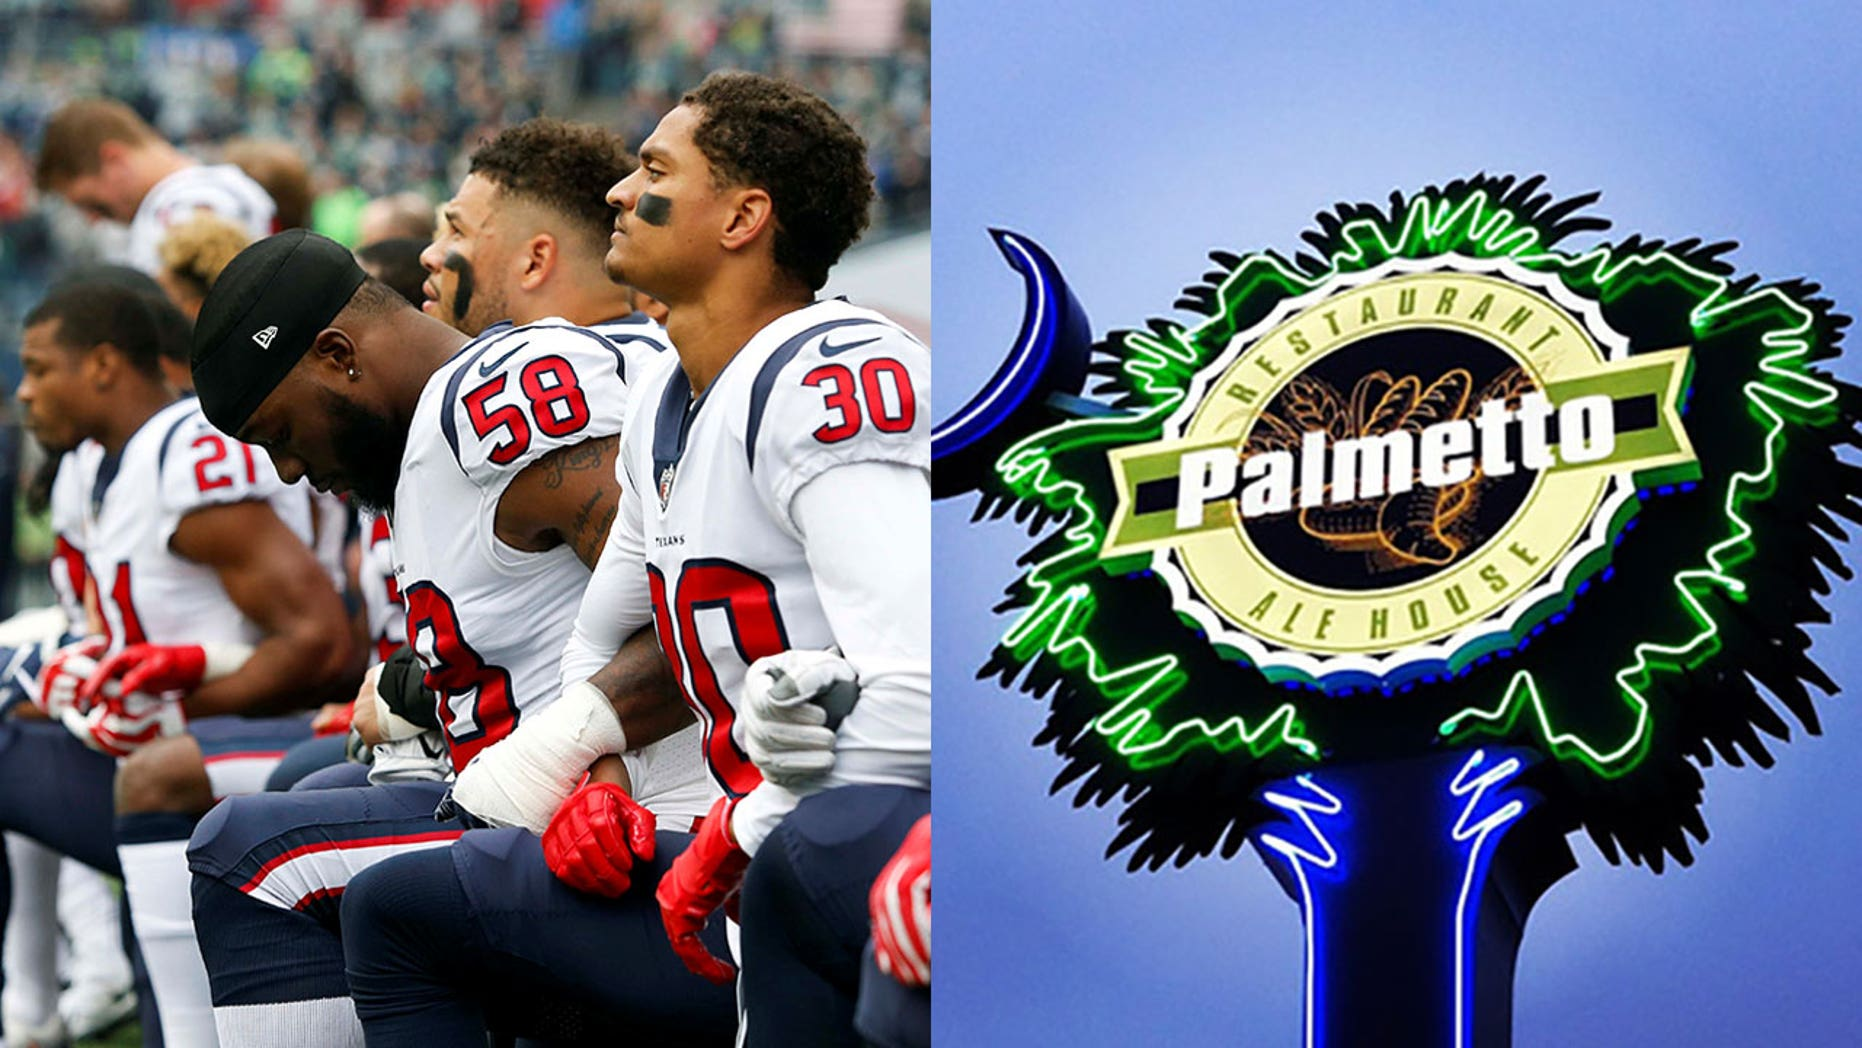 """[I] have a right as a business owner to turn off the channel, and not support a business that has allowed the disrespect of our country and our flag,"" says Palmetto Restaurant owner David McCraw."